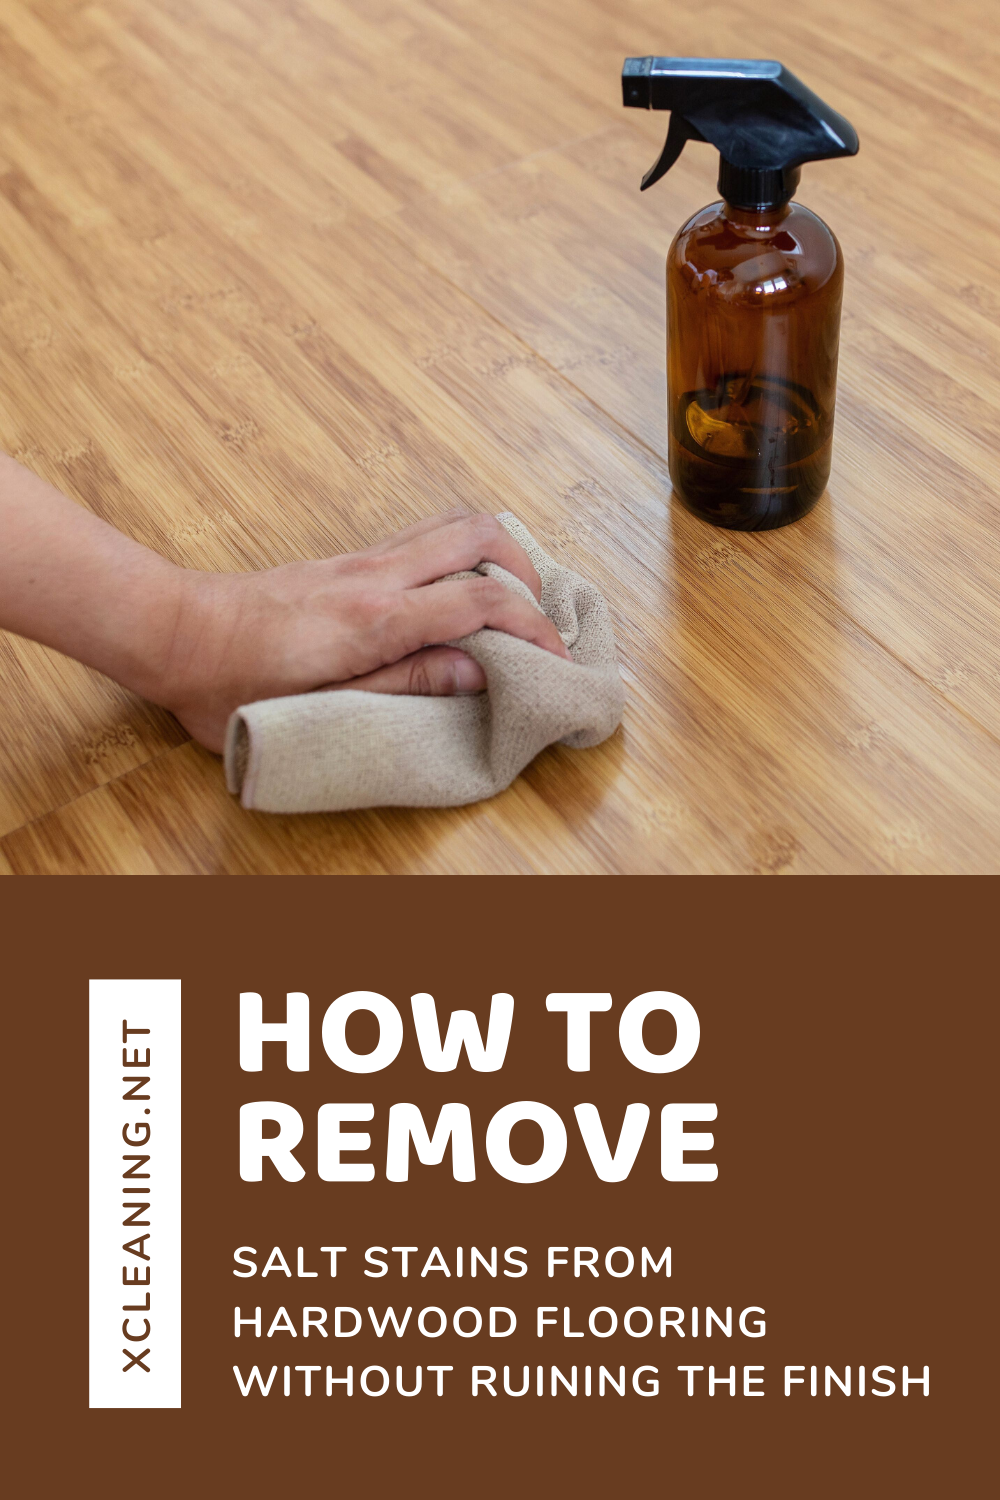 How Remove Salt Stains From Hardwood Flooring Out Ruining The Finish Xcleaning